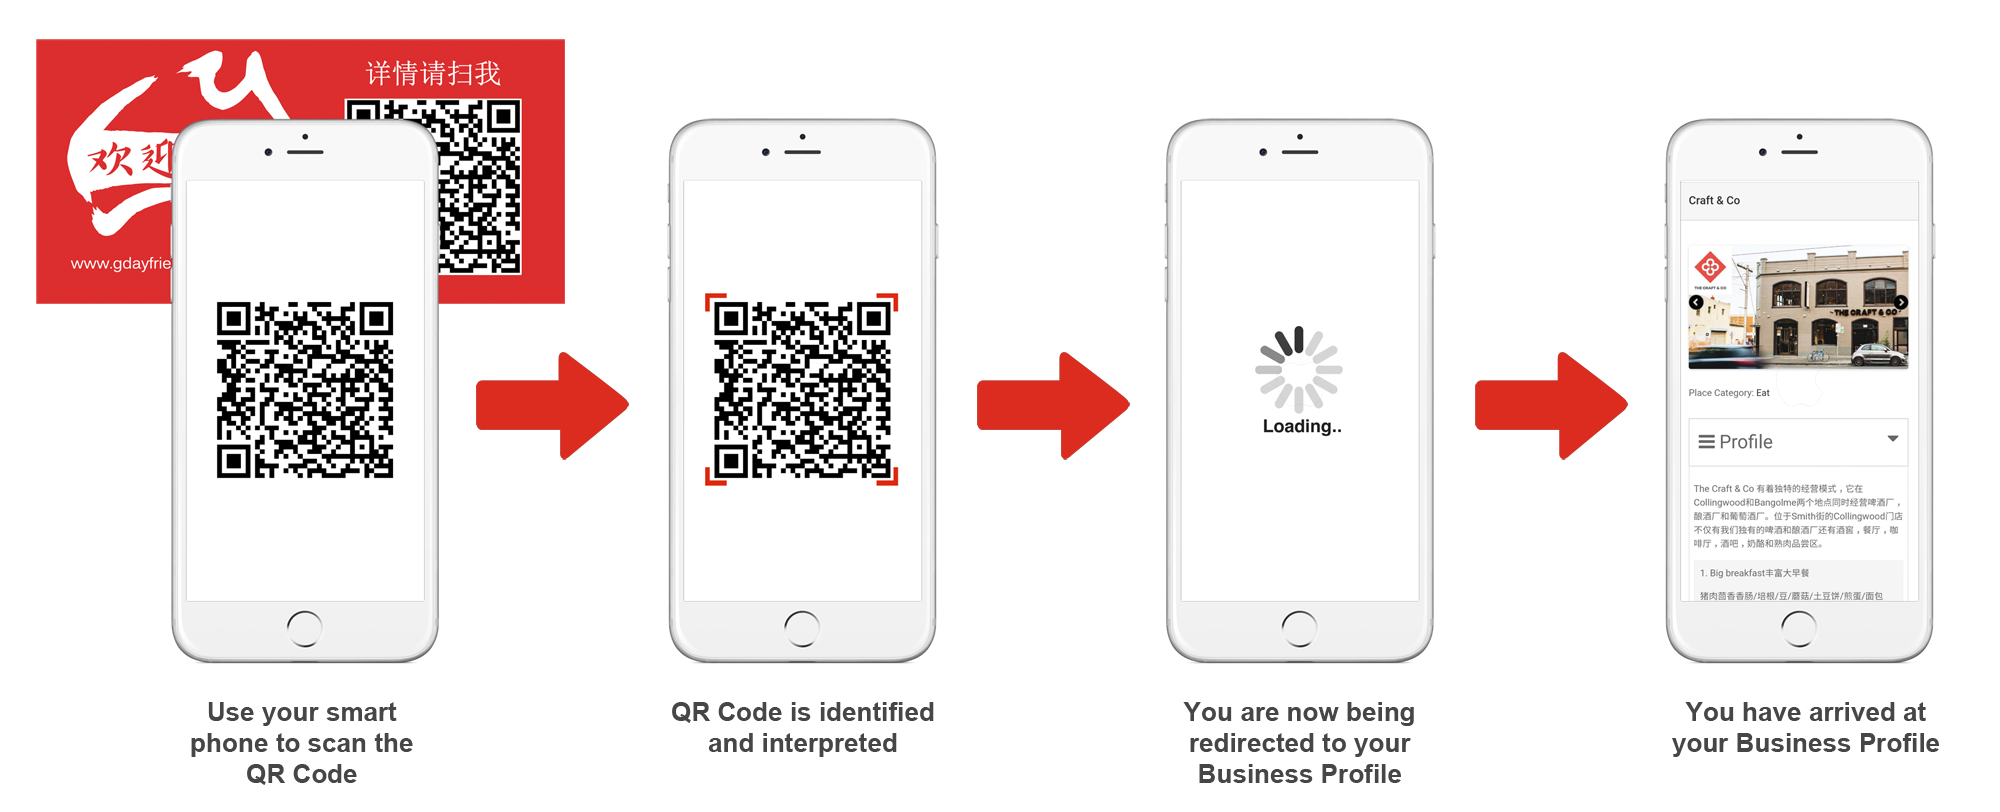 Steps to scanning a QR Code